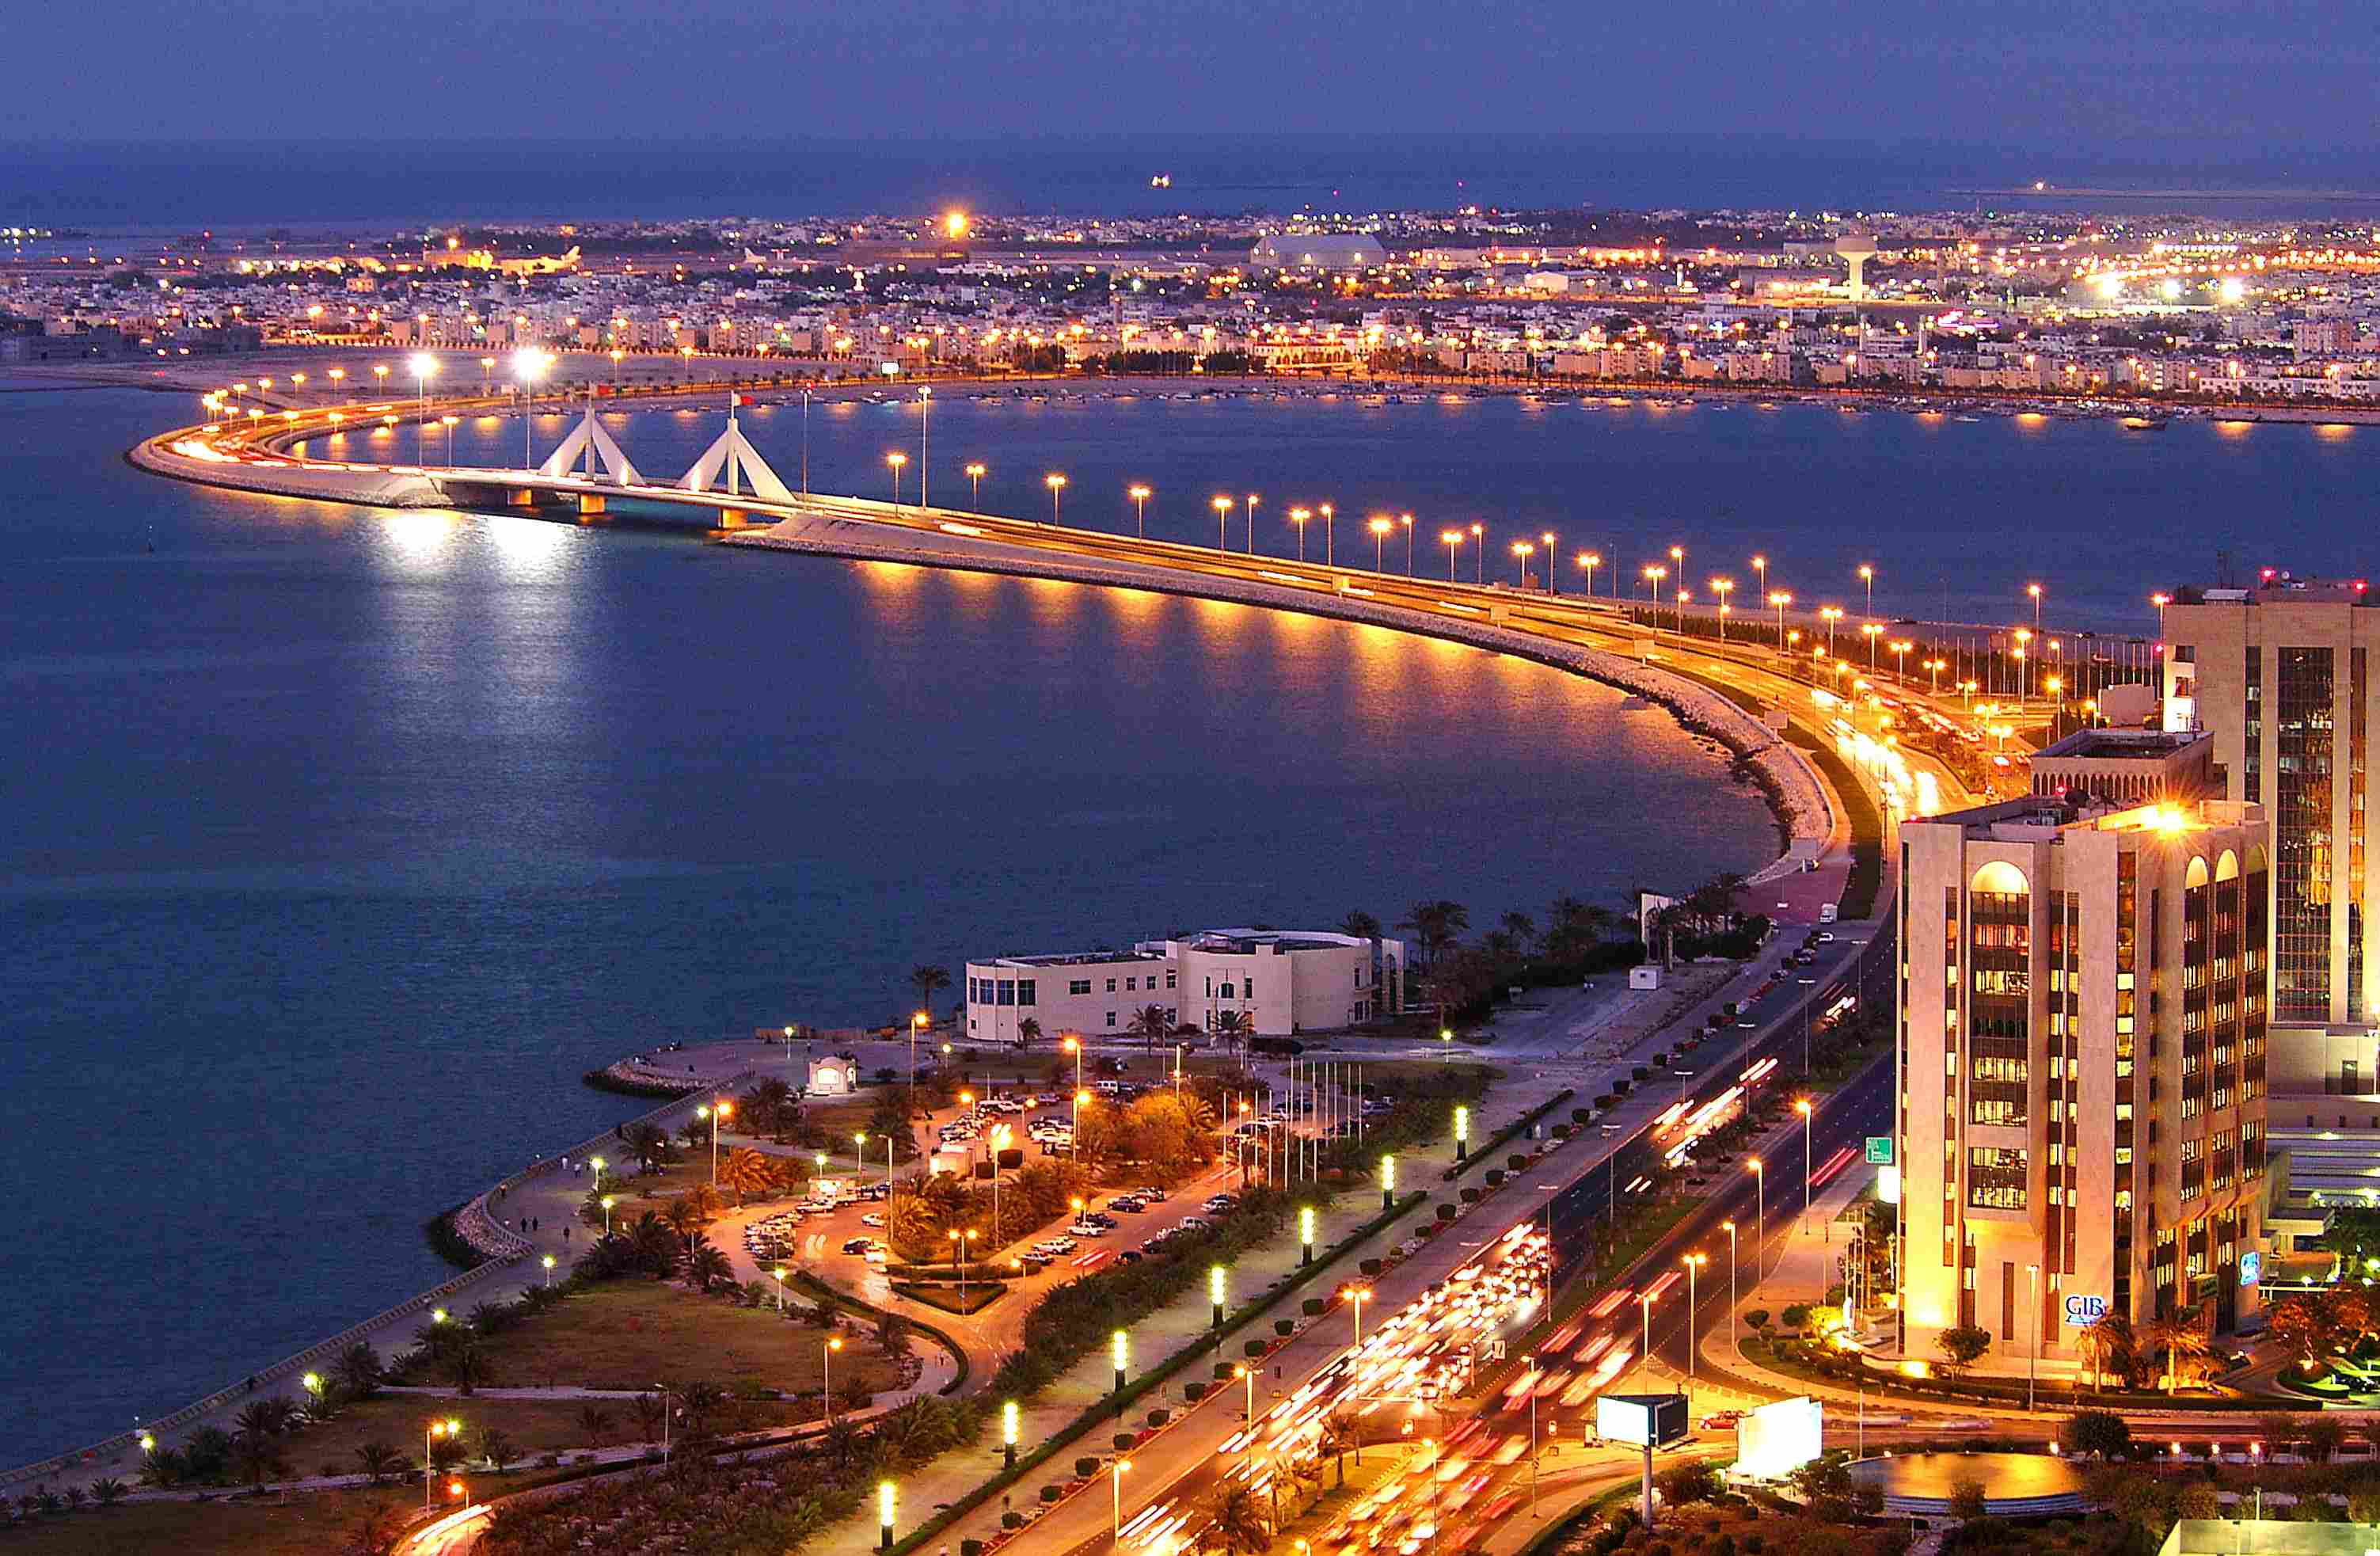 City Evening Lights in Bahrain  1390.12 Kb